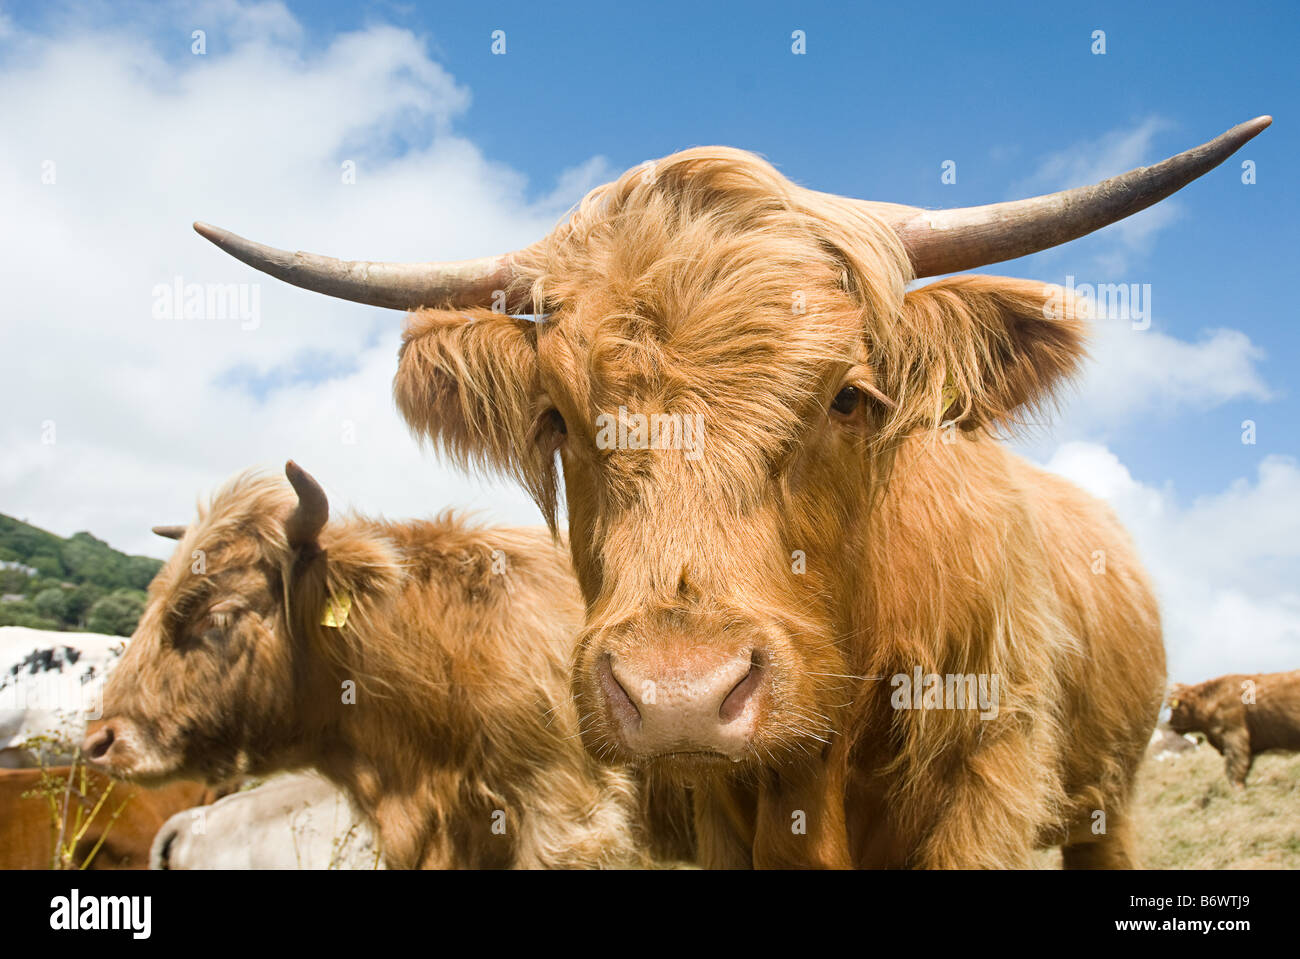 Highland cows - Stock Image